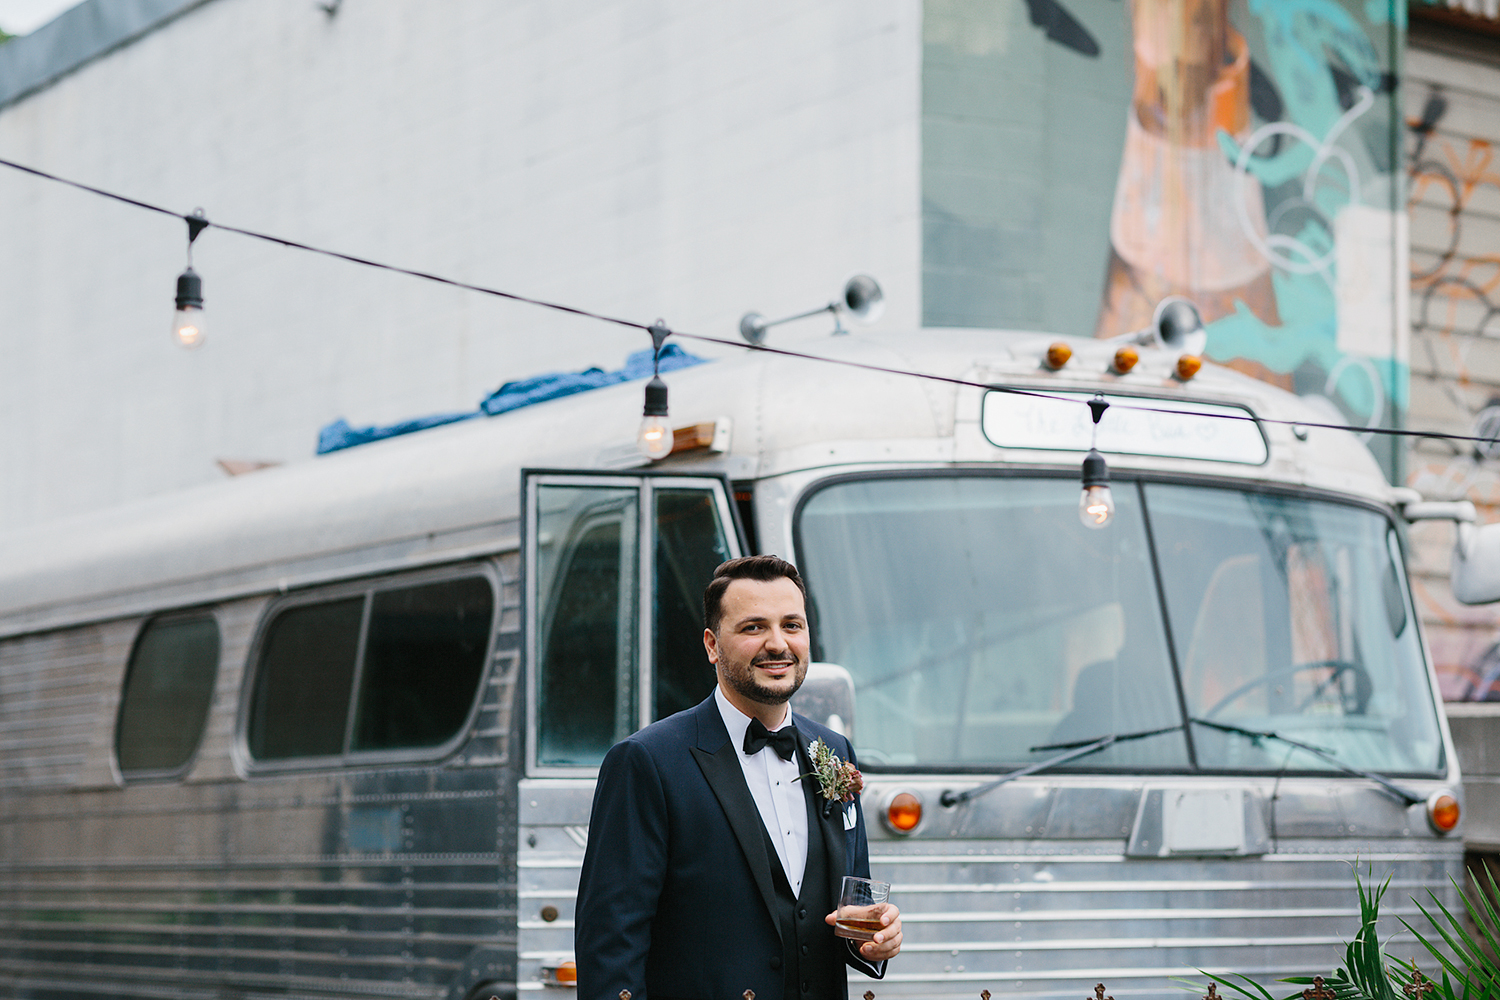 downtown-toronto-wedding-photographer-ryanne-hollies-photography-airship37-distillery-district-wedding-day-modern-minimalist-venues-in-toronto-cool-trendy-hipster-party-bus-outdoor-patio-graffiti-groom-portraits.jpg